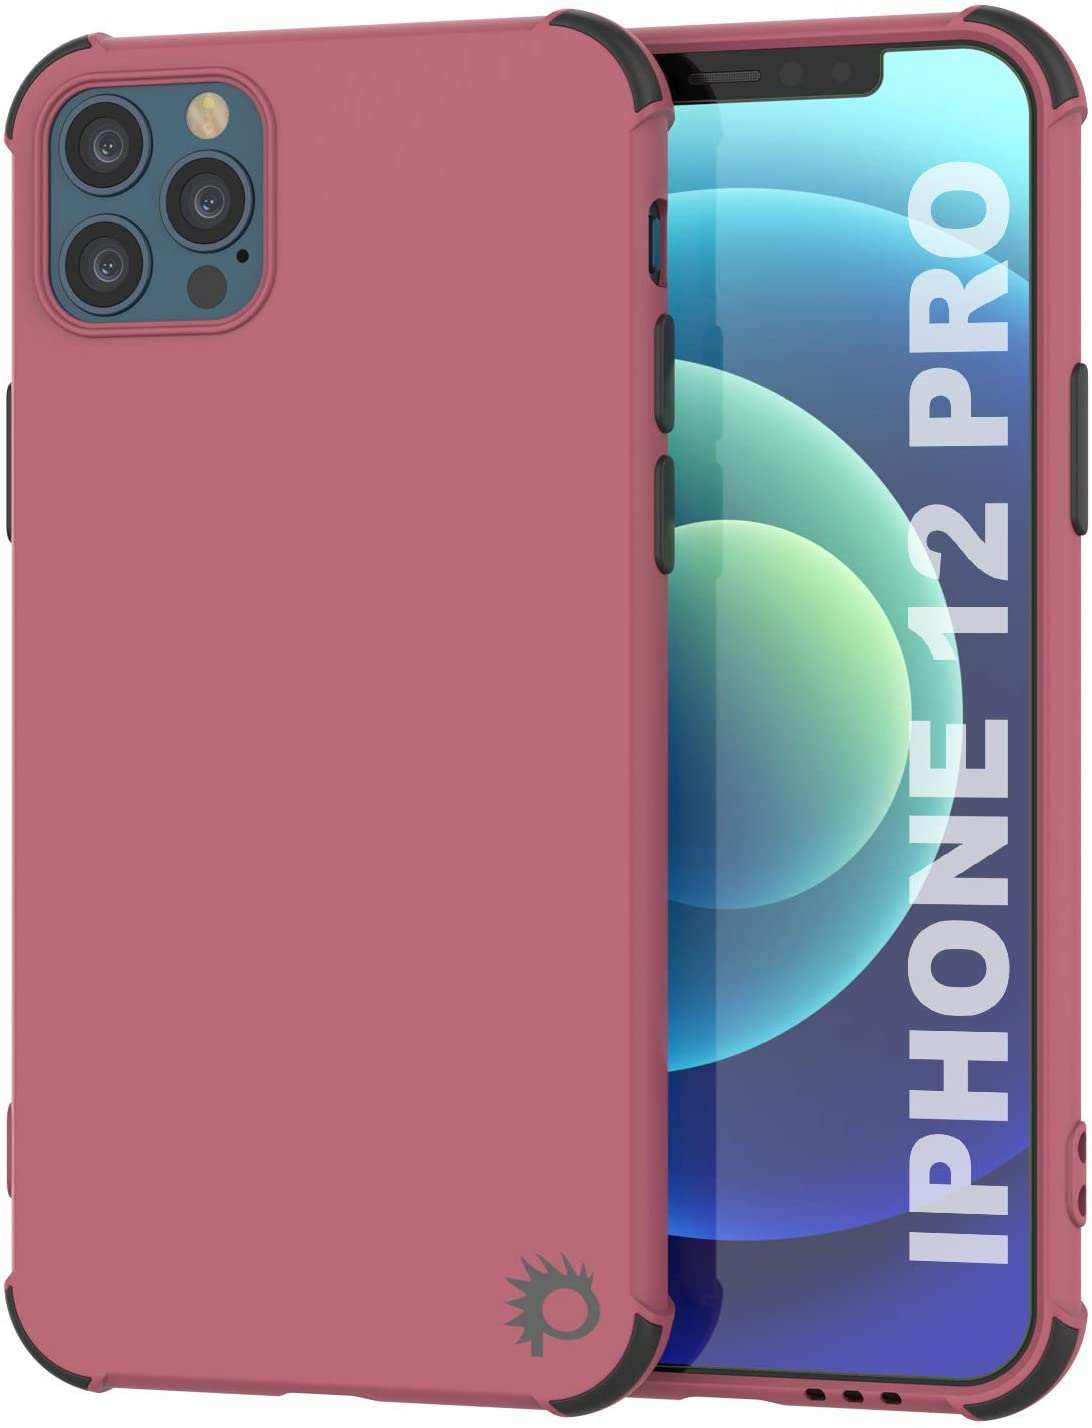 Punkcase Protective & Lightweight TPU Case [Sunshine Series] for iPhone 12 Pro [Rose]